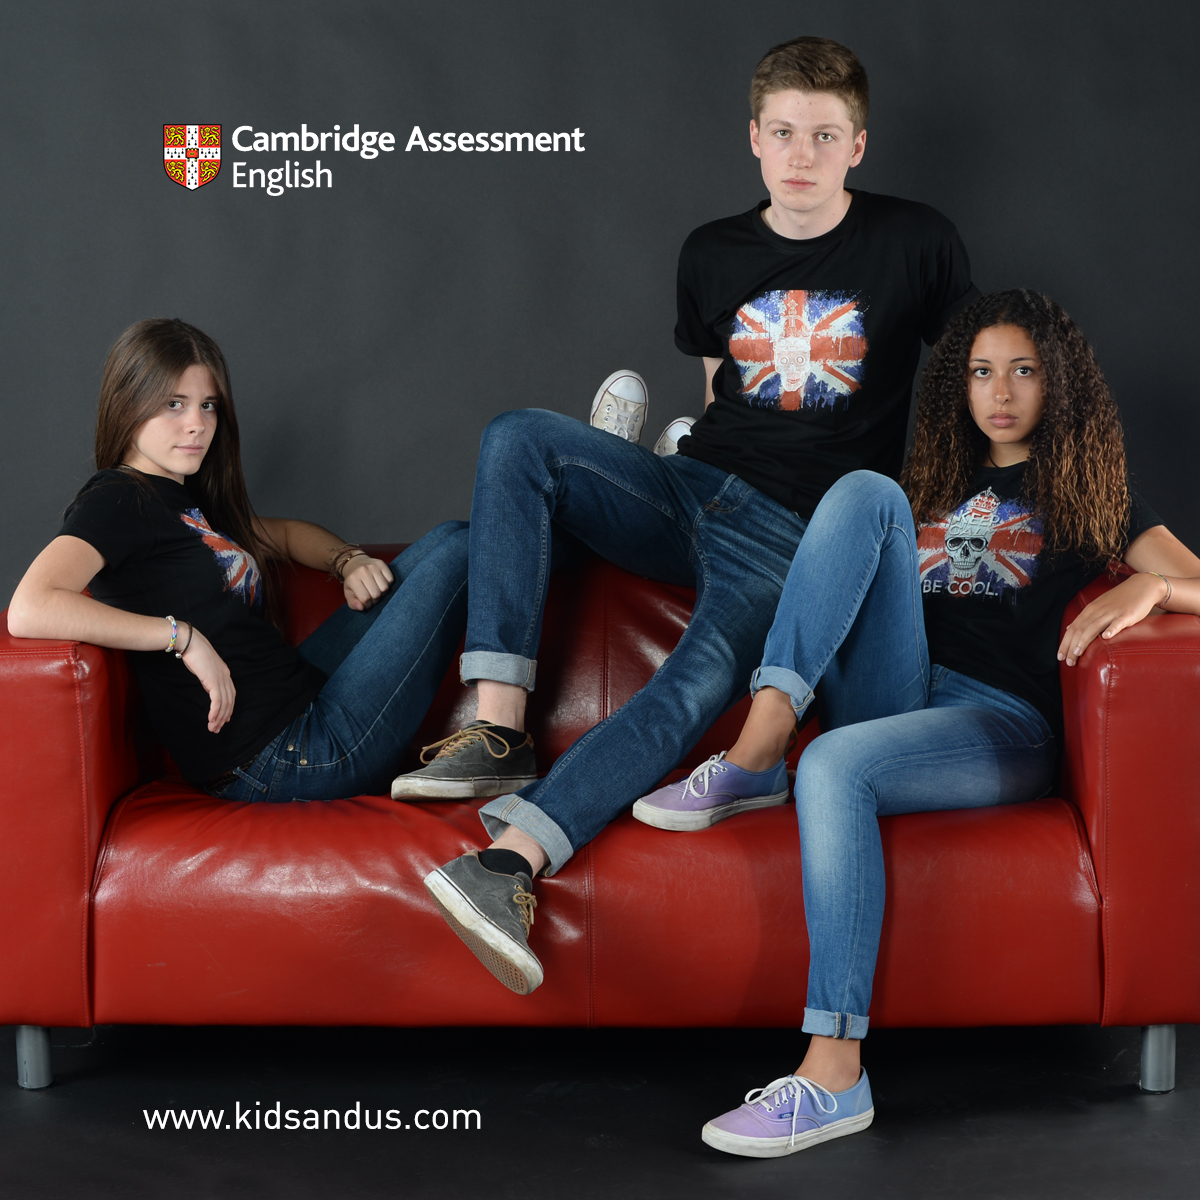 Cambridge English destaca que los alumnos de Kids&Us brillan en las pruebas de comprensión oral (listening)